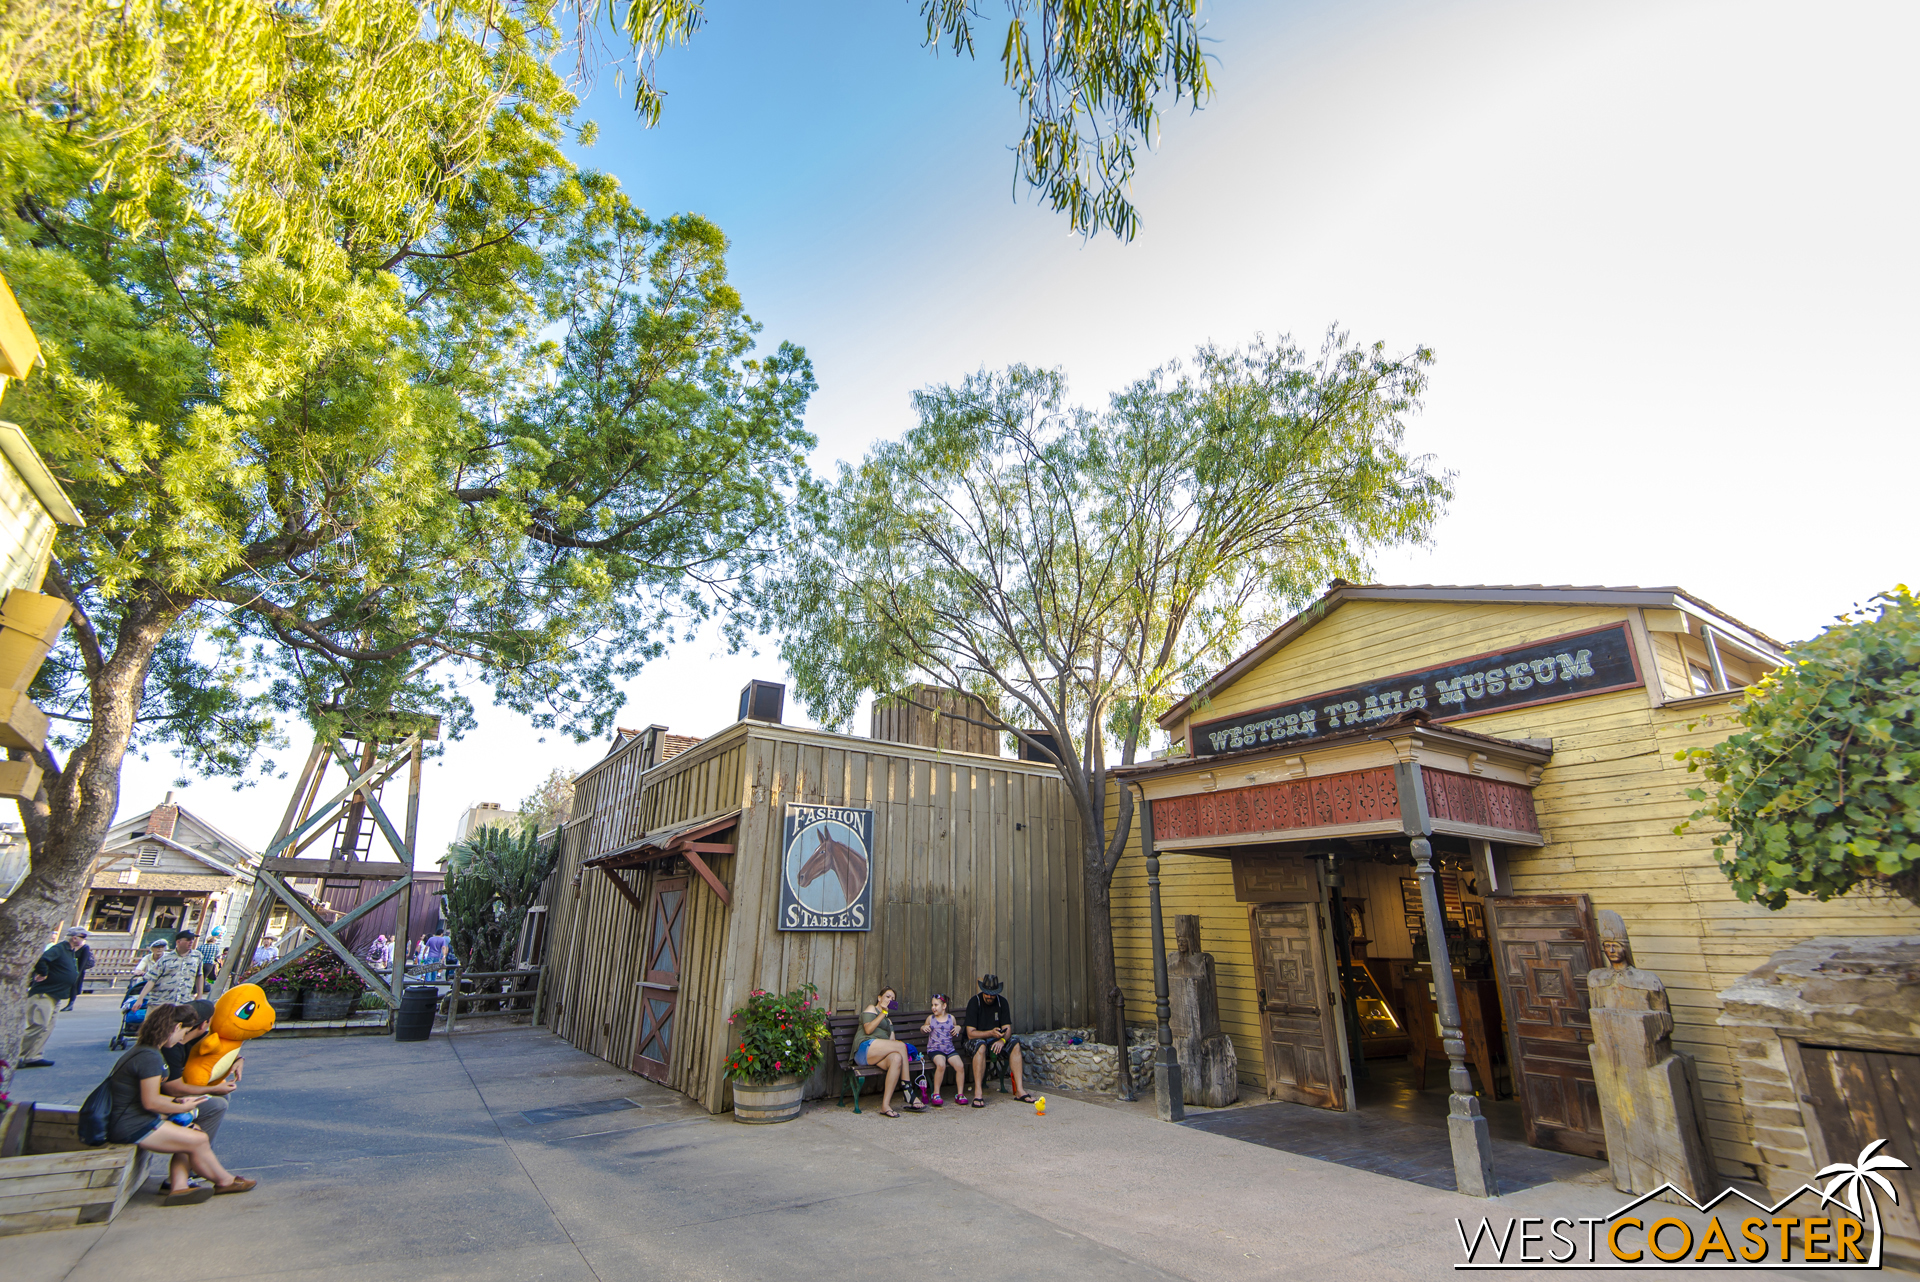 From models to tools to authentic garb to weapons to geodes to supplies, this museum really provides a thorough look at life for the western explorers and settlers. Check out all the things inside!